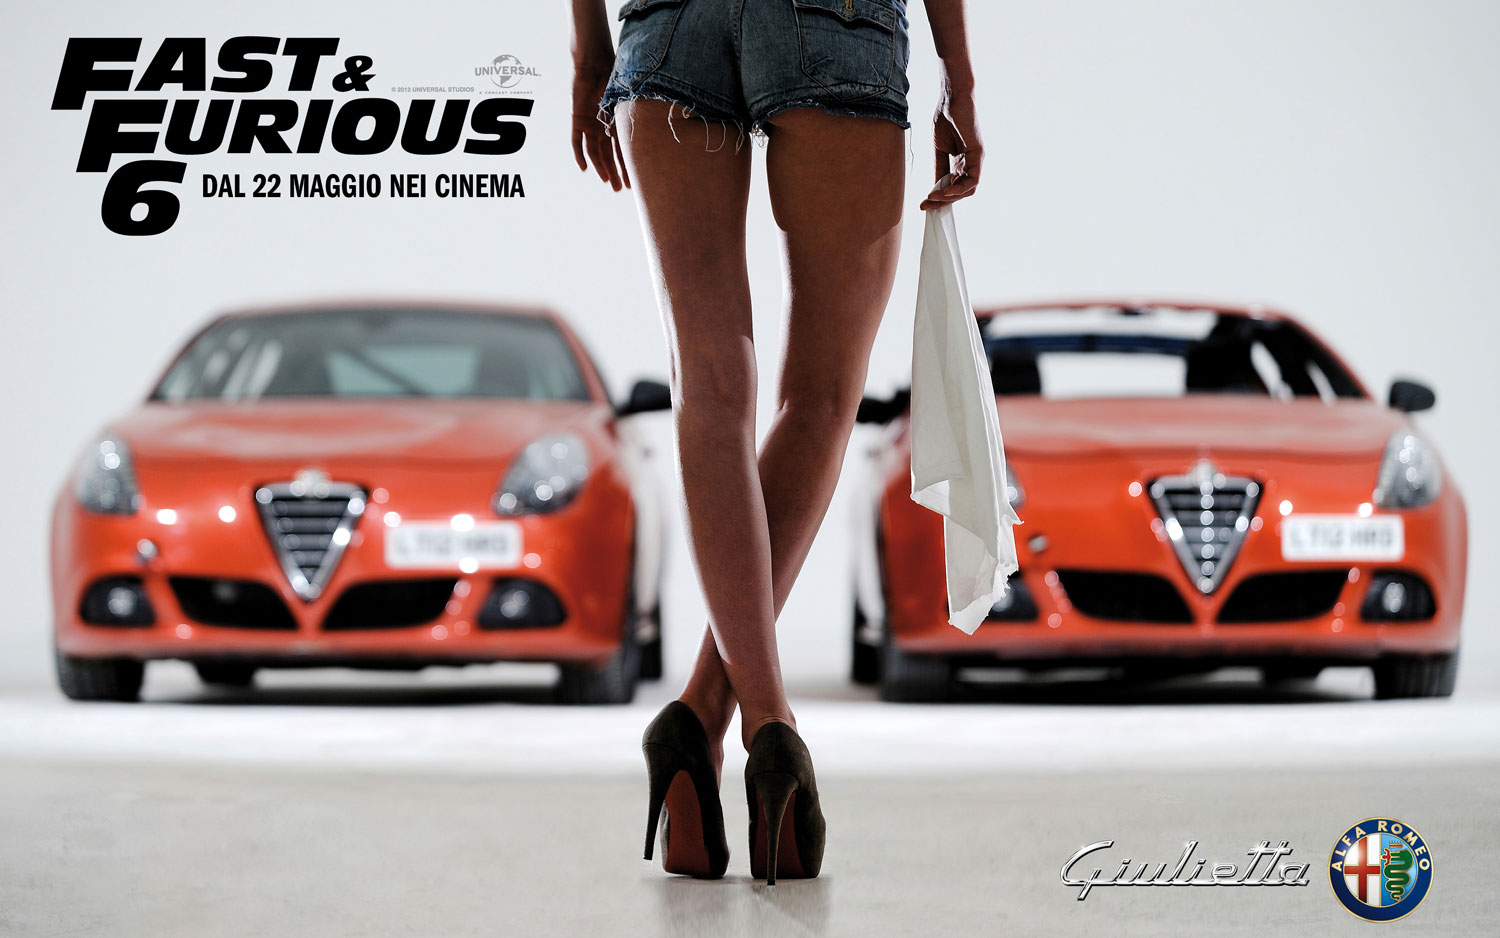 http://www.motoringme.com/wp-content/uploads/2013/05/Alfa-Romeo-Giulietta-in-Fast-and-Furious-6-poster.jpg